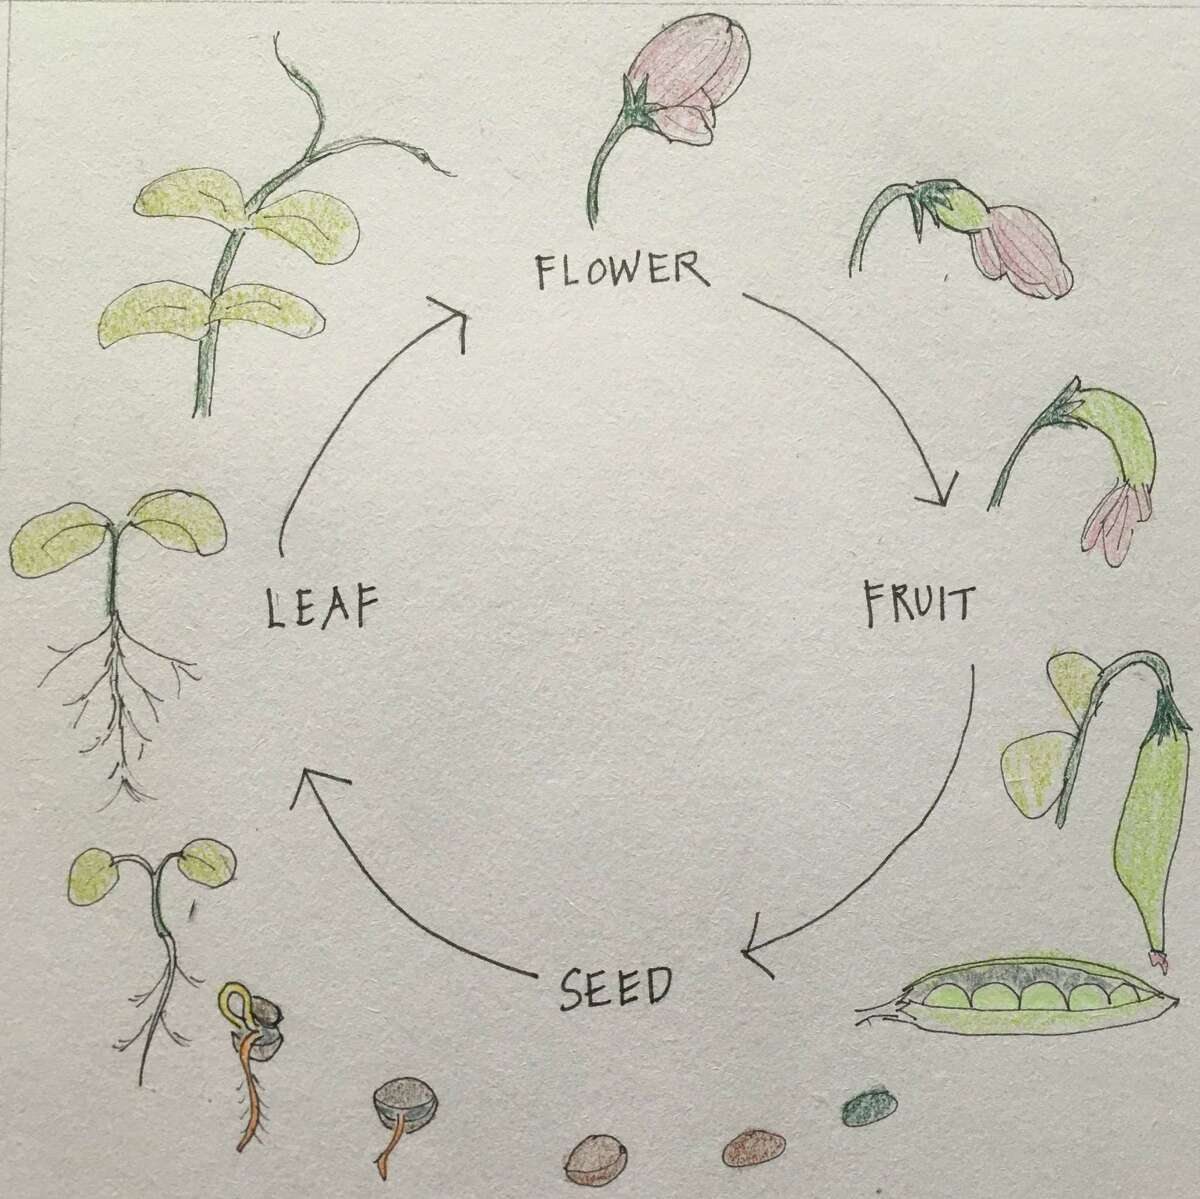 Barbara Putnam is leading Planting seeds: Activity, metaphor, ritual, March 20 at Wisdom House.